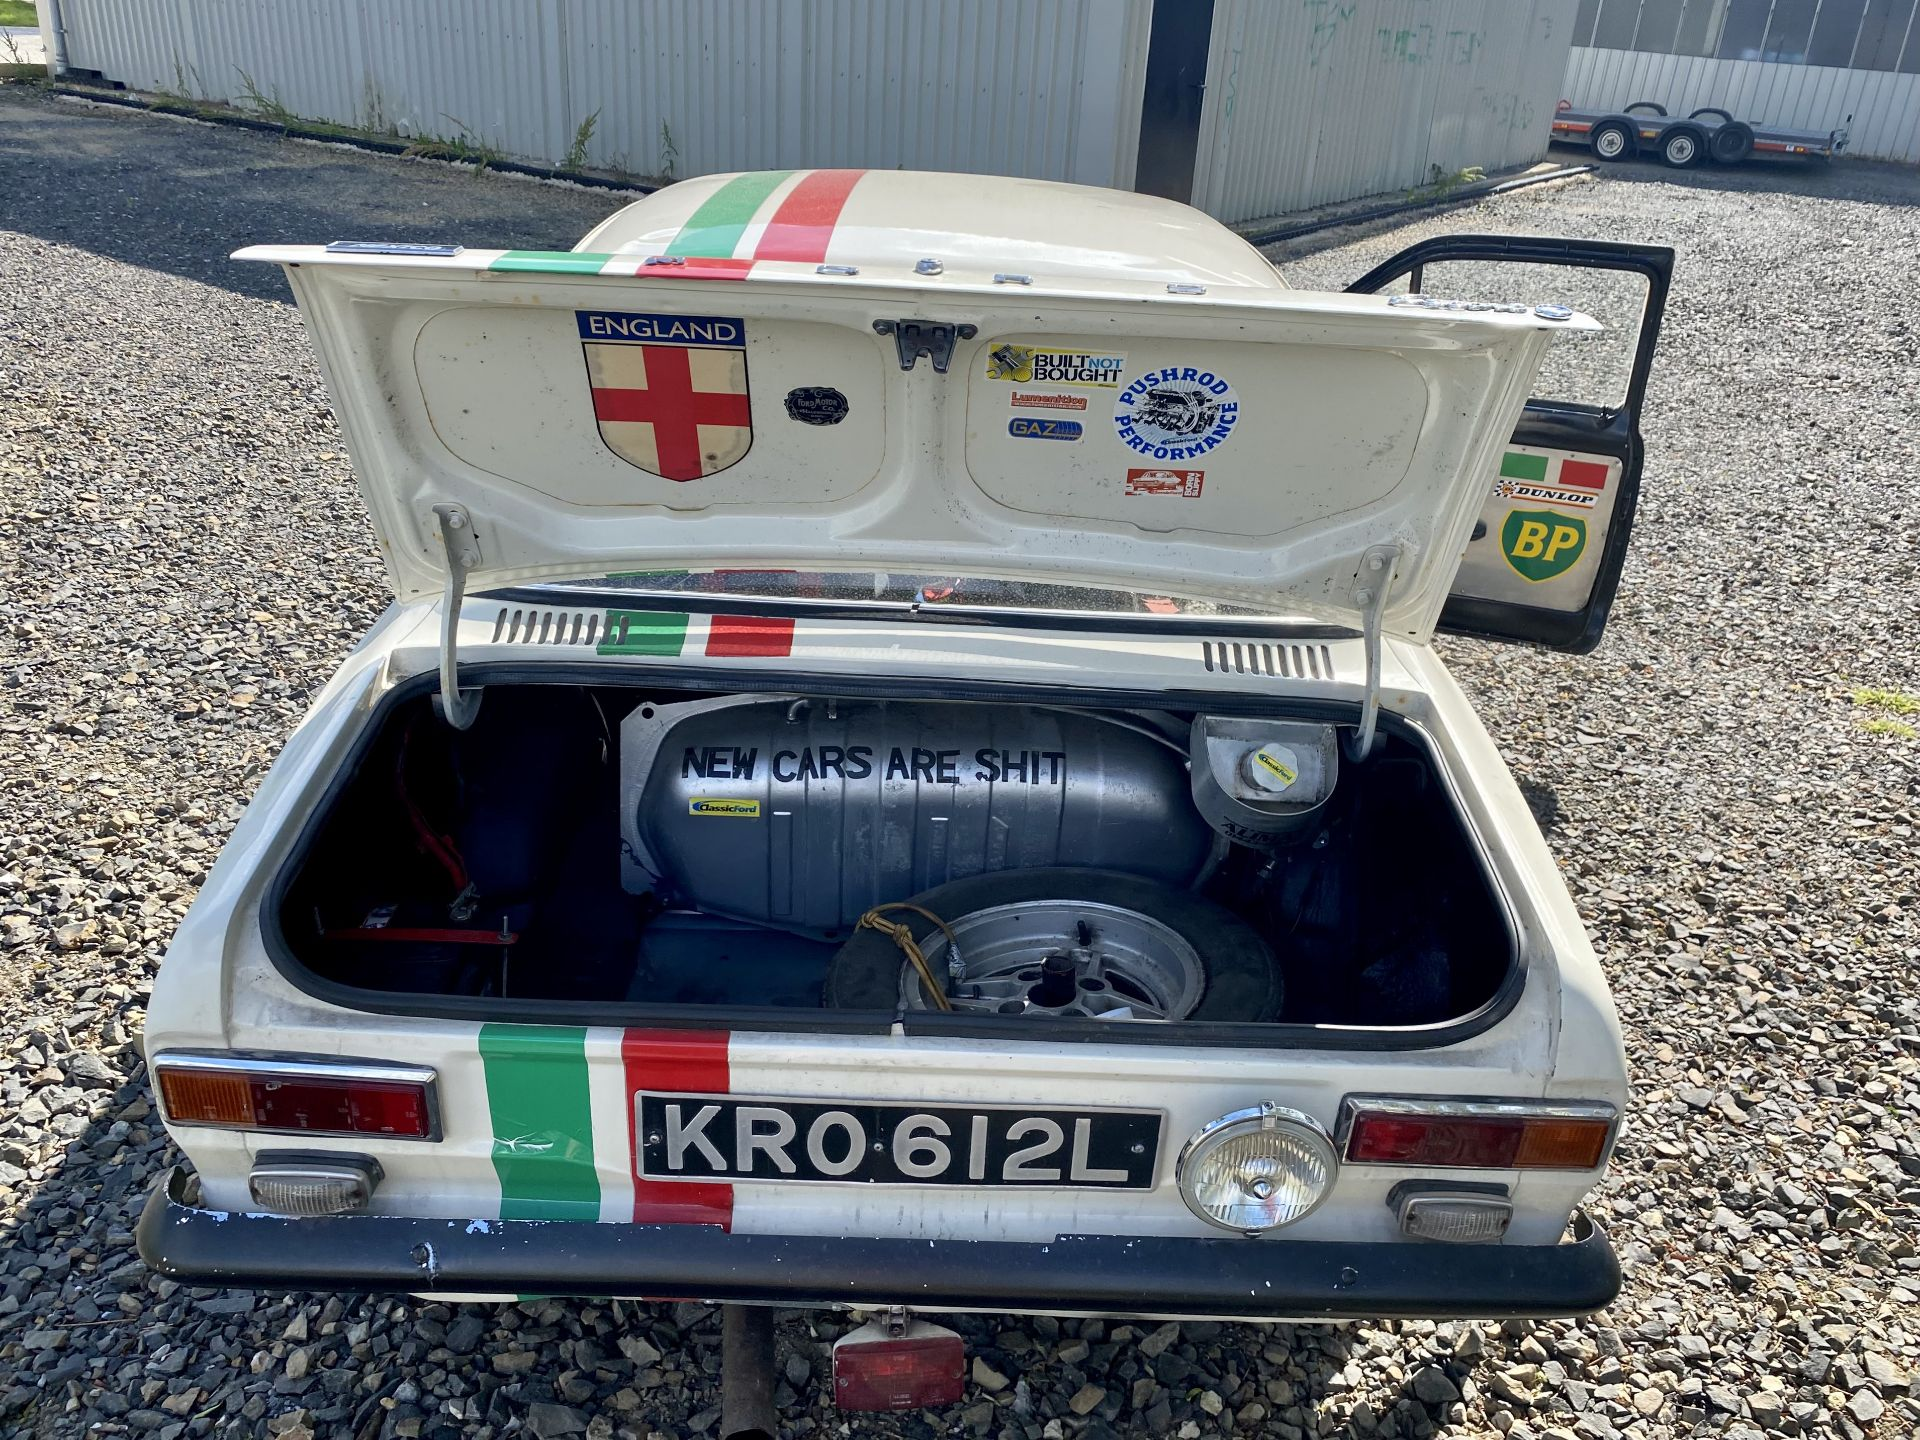 Ford Escort Mexico - Image 40 of 51